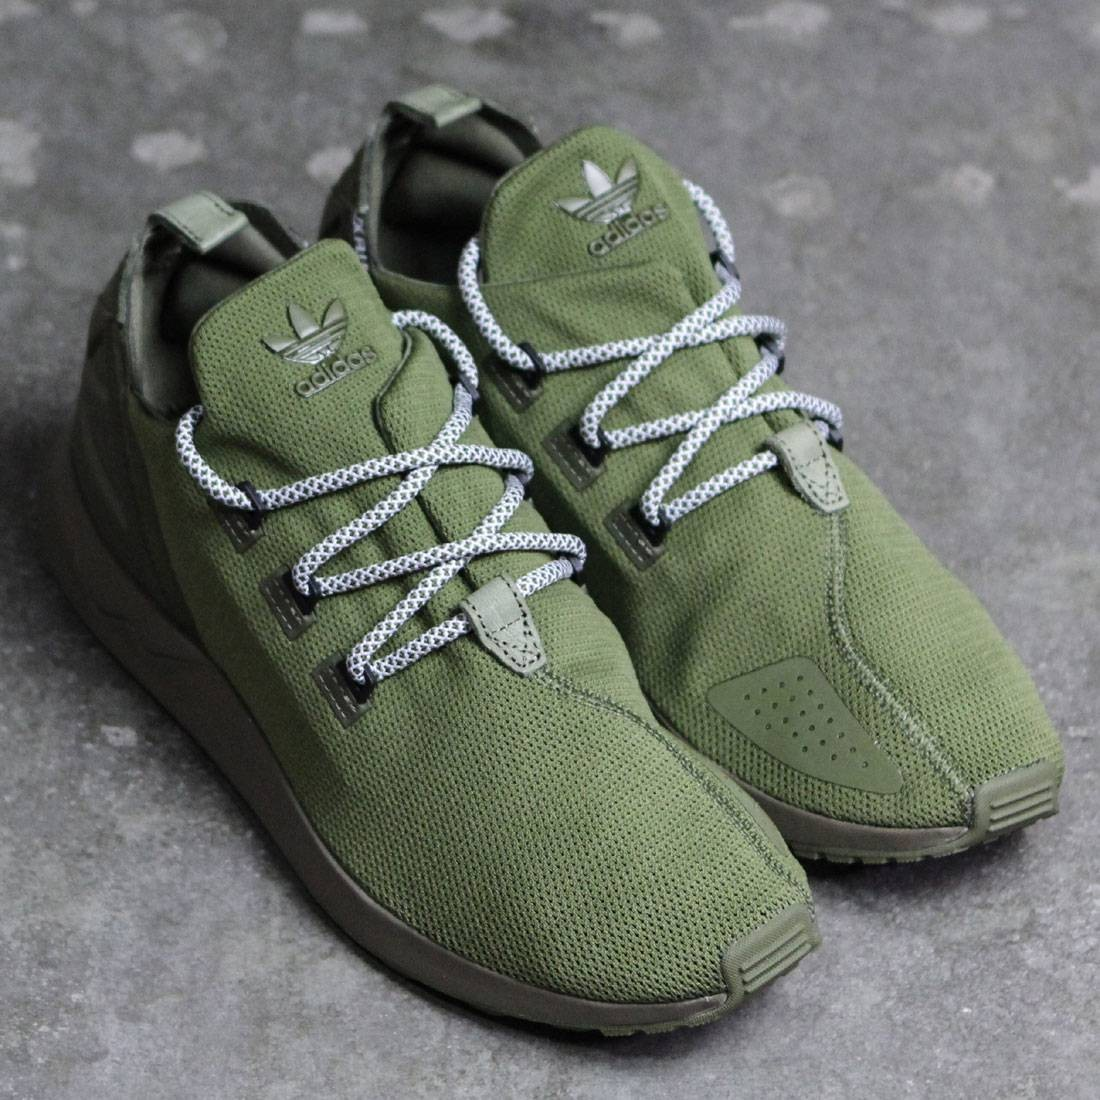 new products b93bf d4f5a Adidas Men ZX Flux ADV X (olive / olive cargo / core black / footwear white)